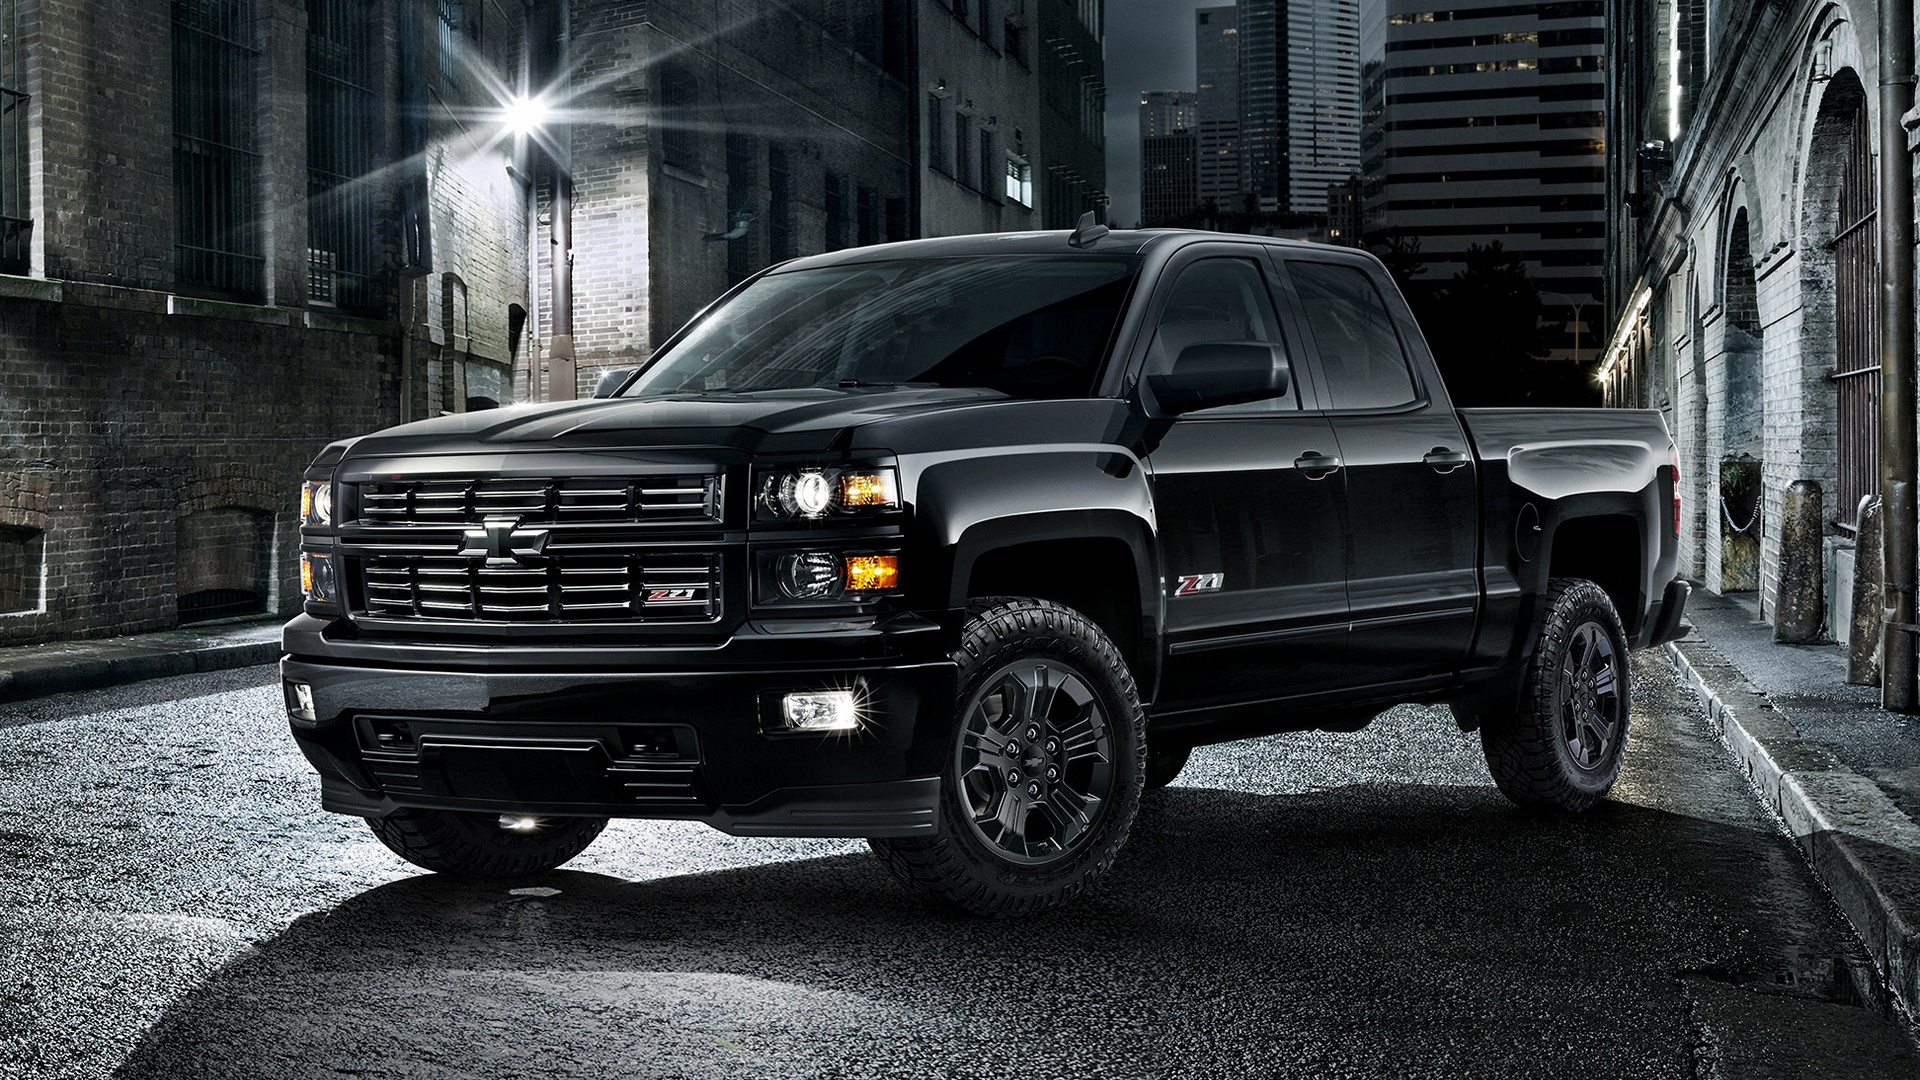 Chevrolet Silverado Lt Z71 Midnight Double Cab 2015 Wallpapers And Hd Images Car Pixel